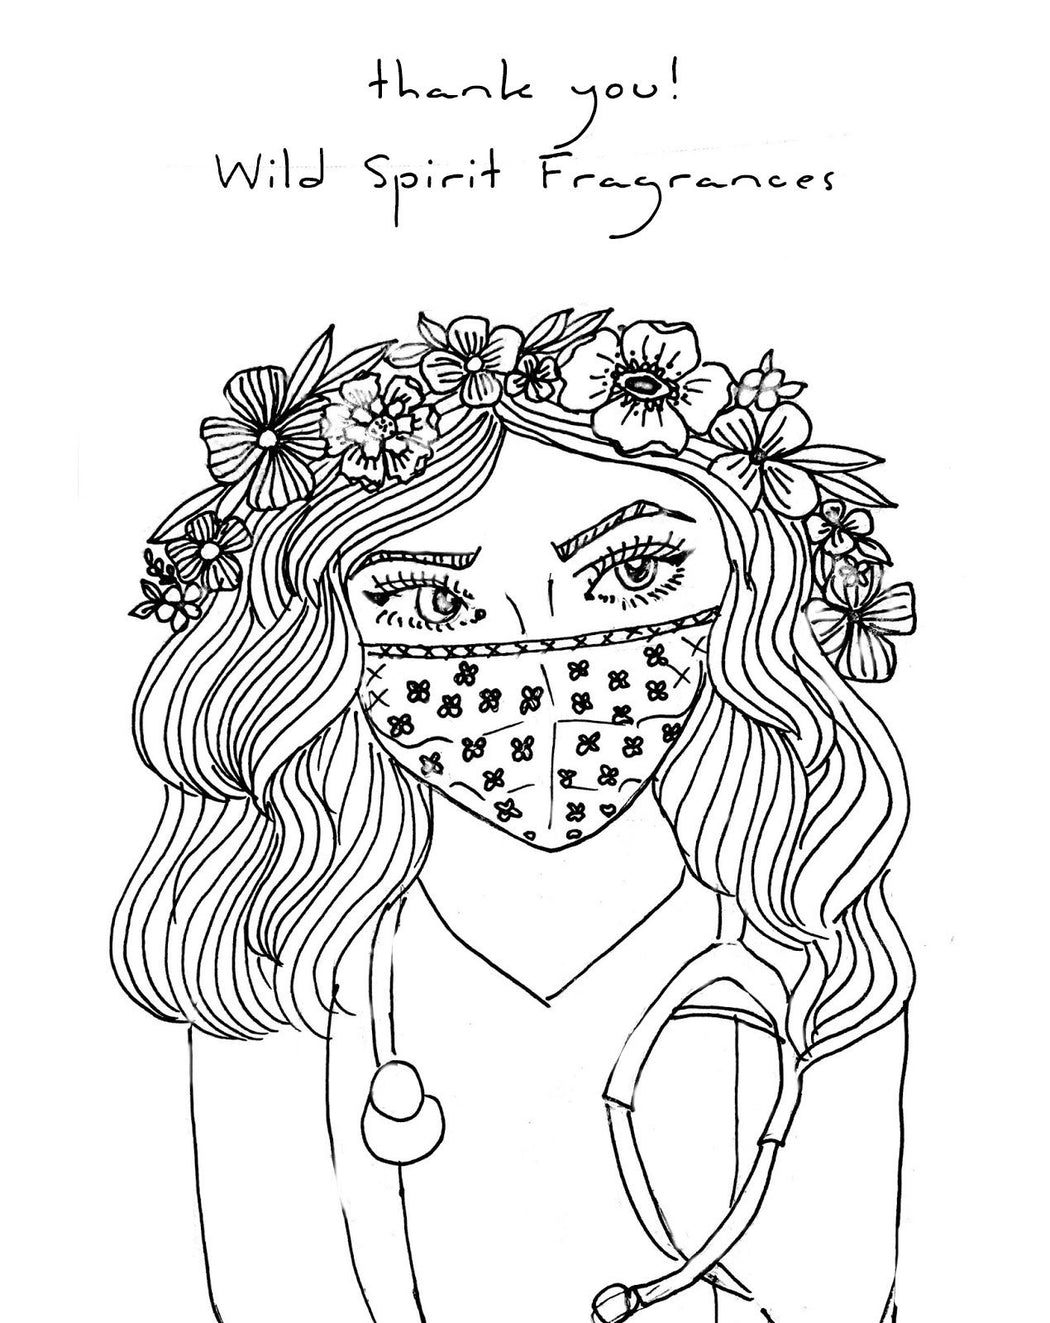 Coloring Page, Free Printable Instant Download, Thank You Nurses - Wild Spirit